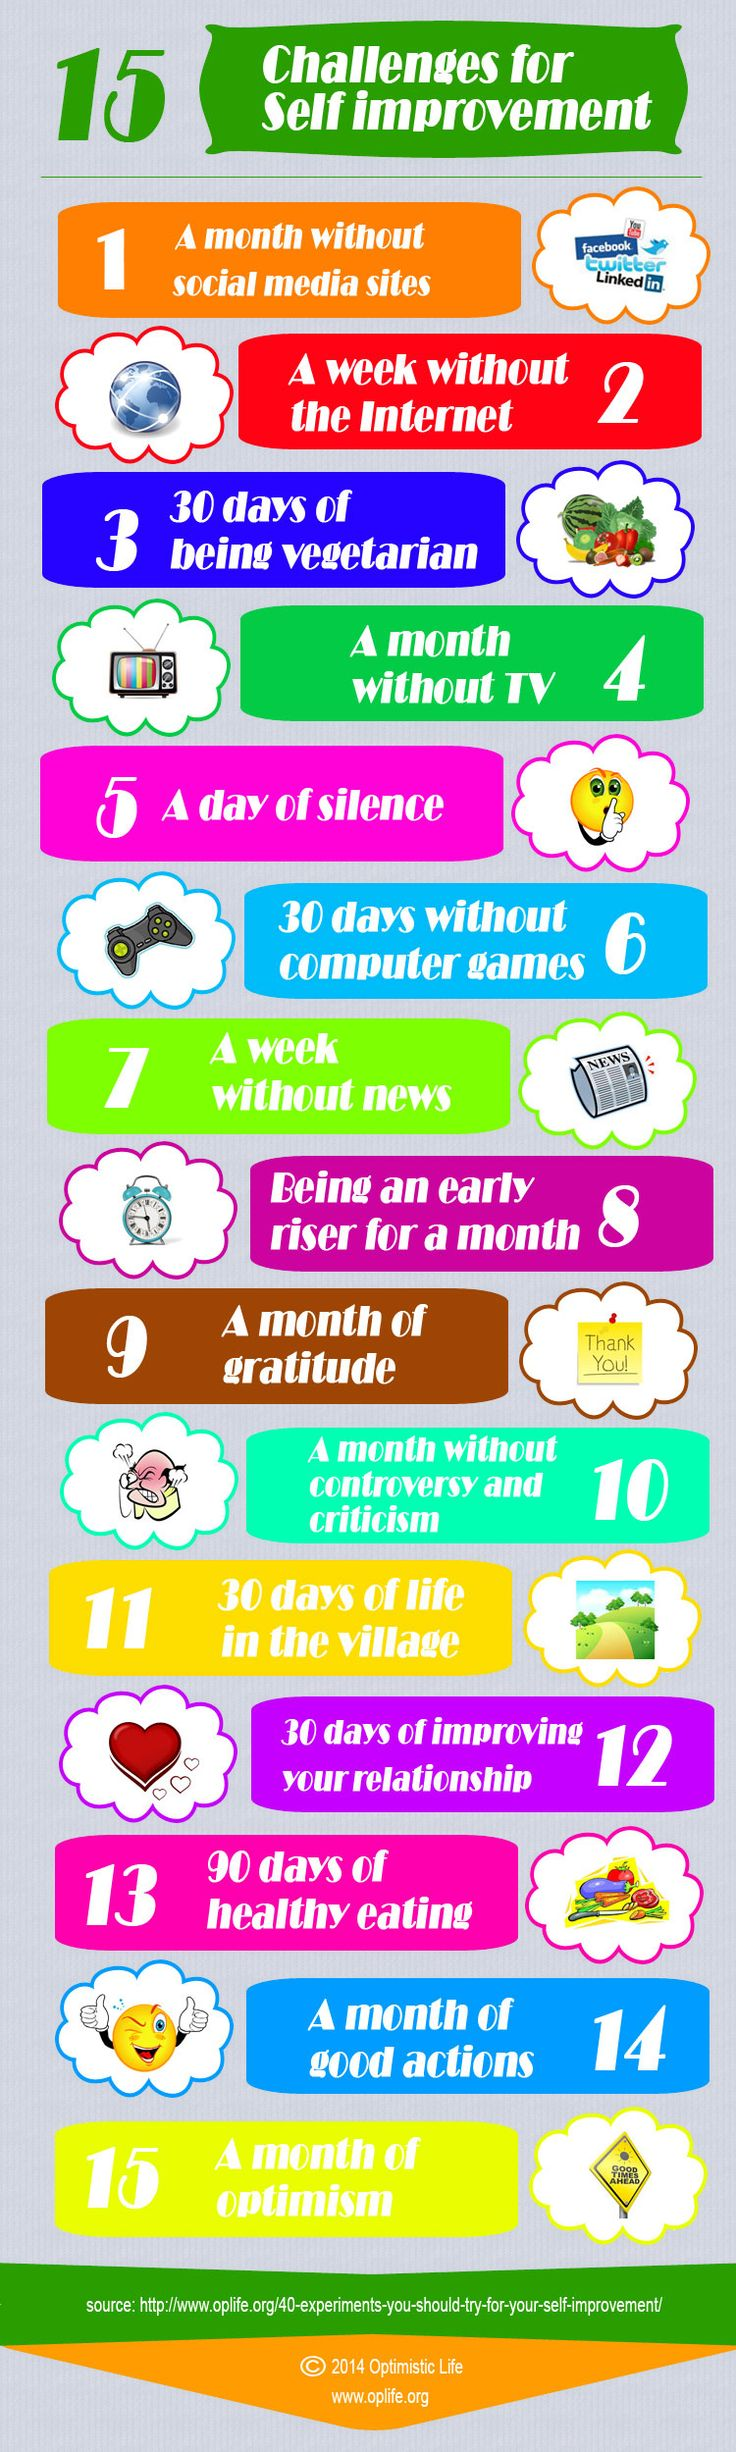 15 challenges for self improvement